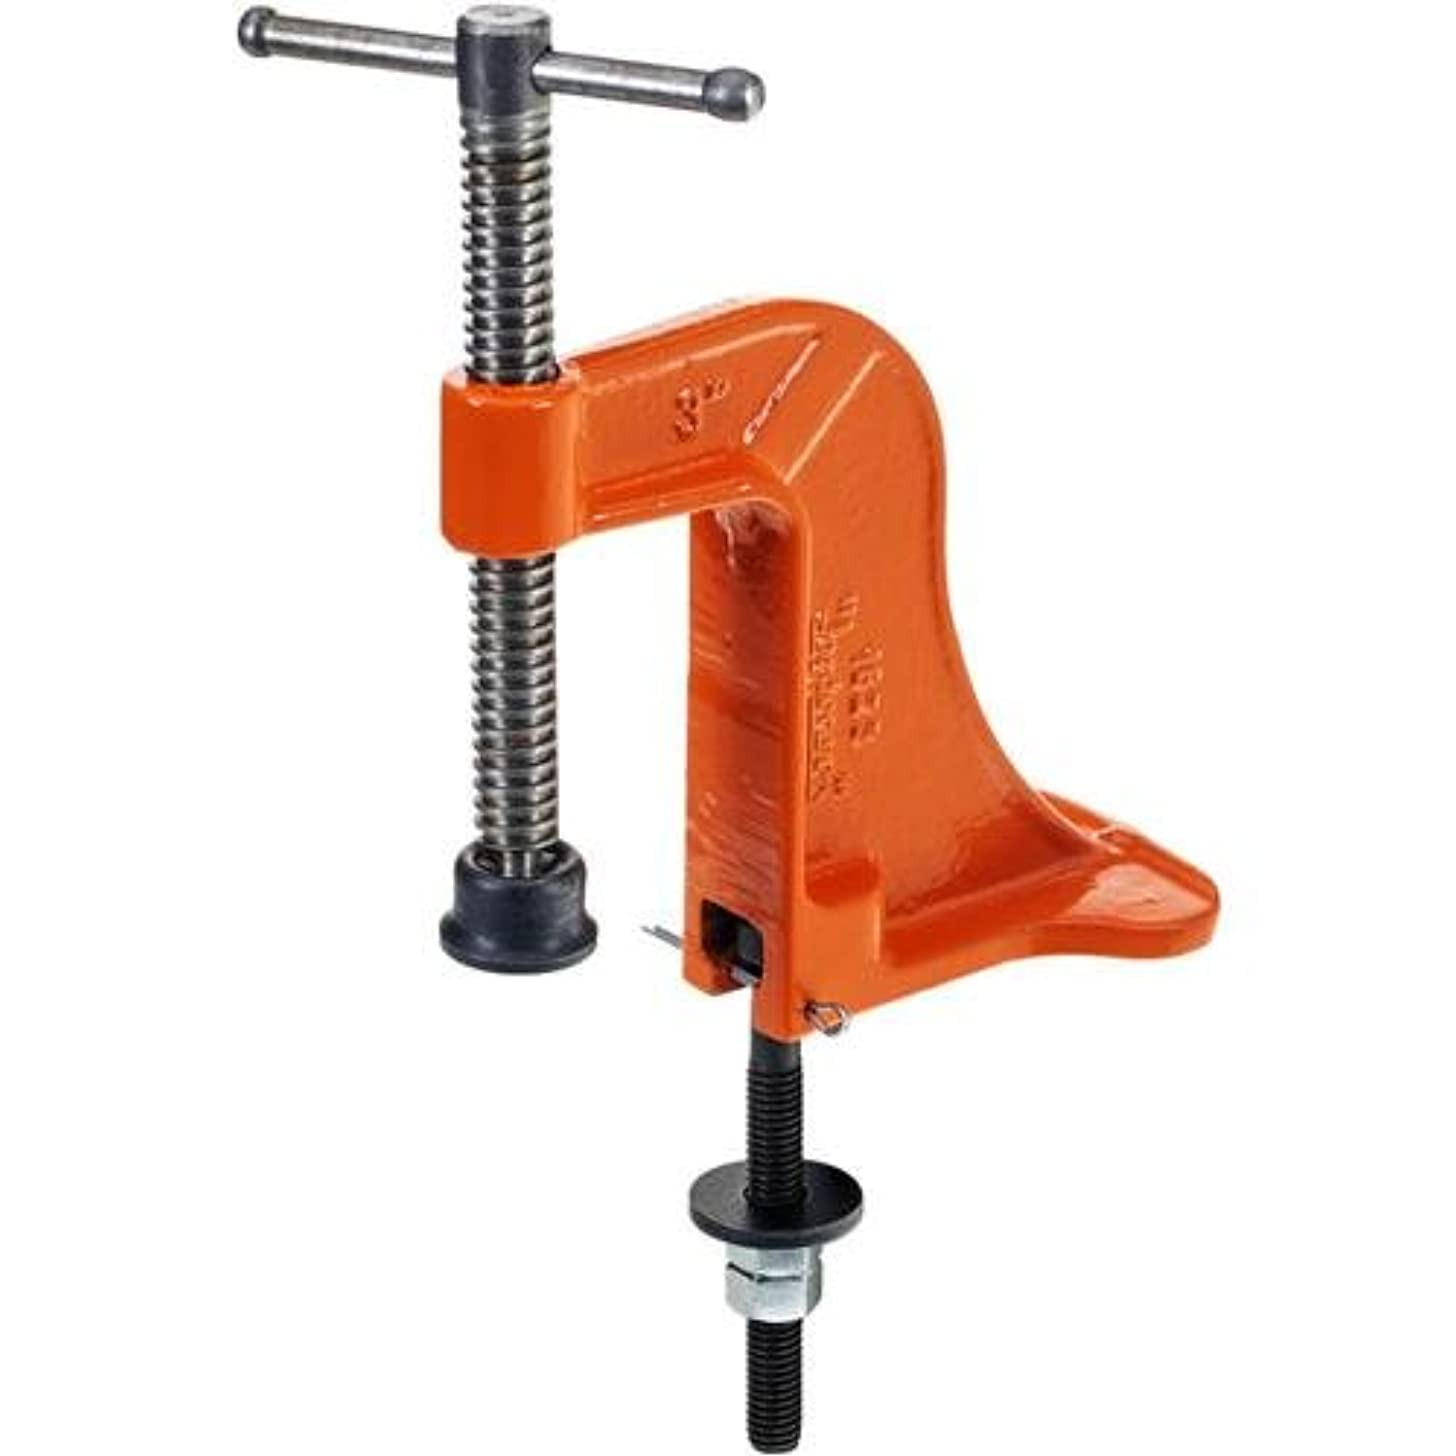 1623 HOLD DOWN CLAMP 3-Inch